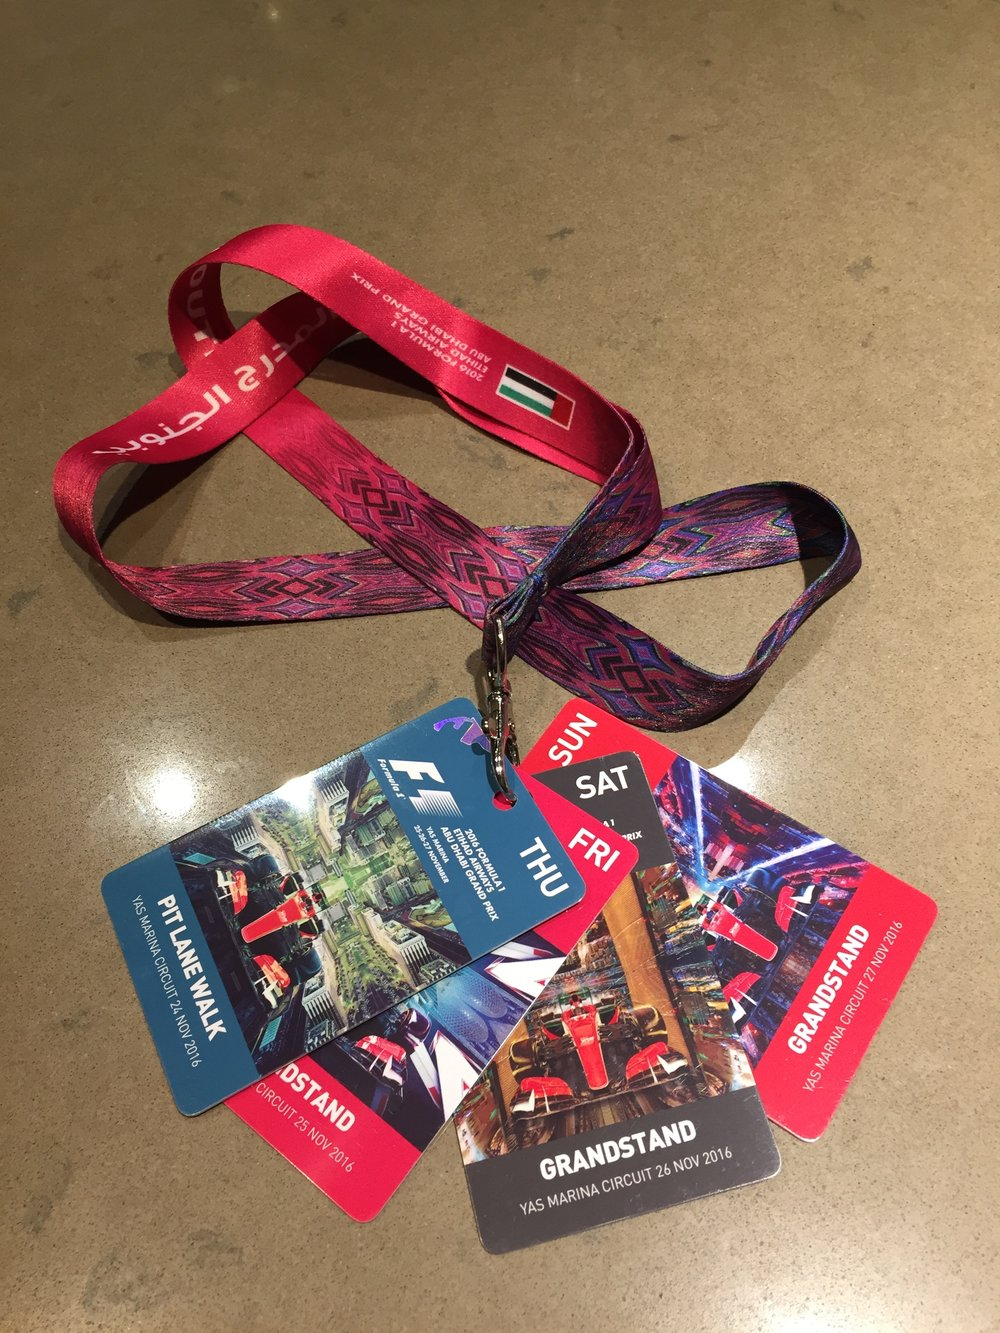 Our tickets for four days at the Abu Dhabi Grand Prix!